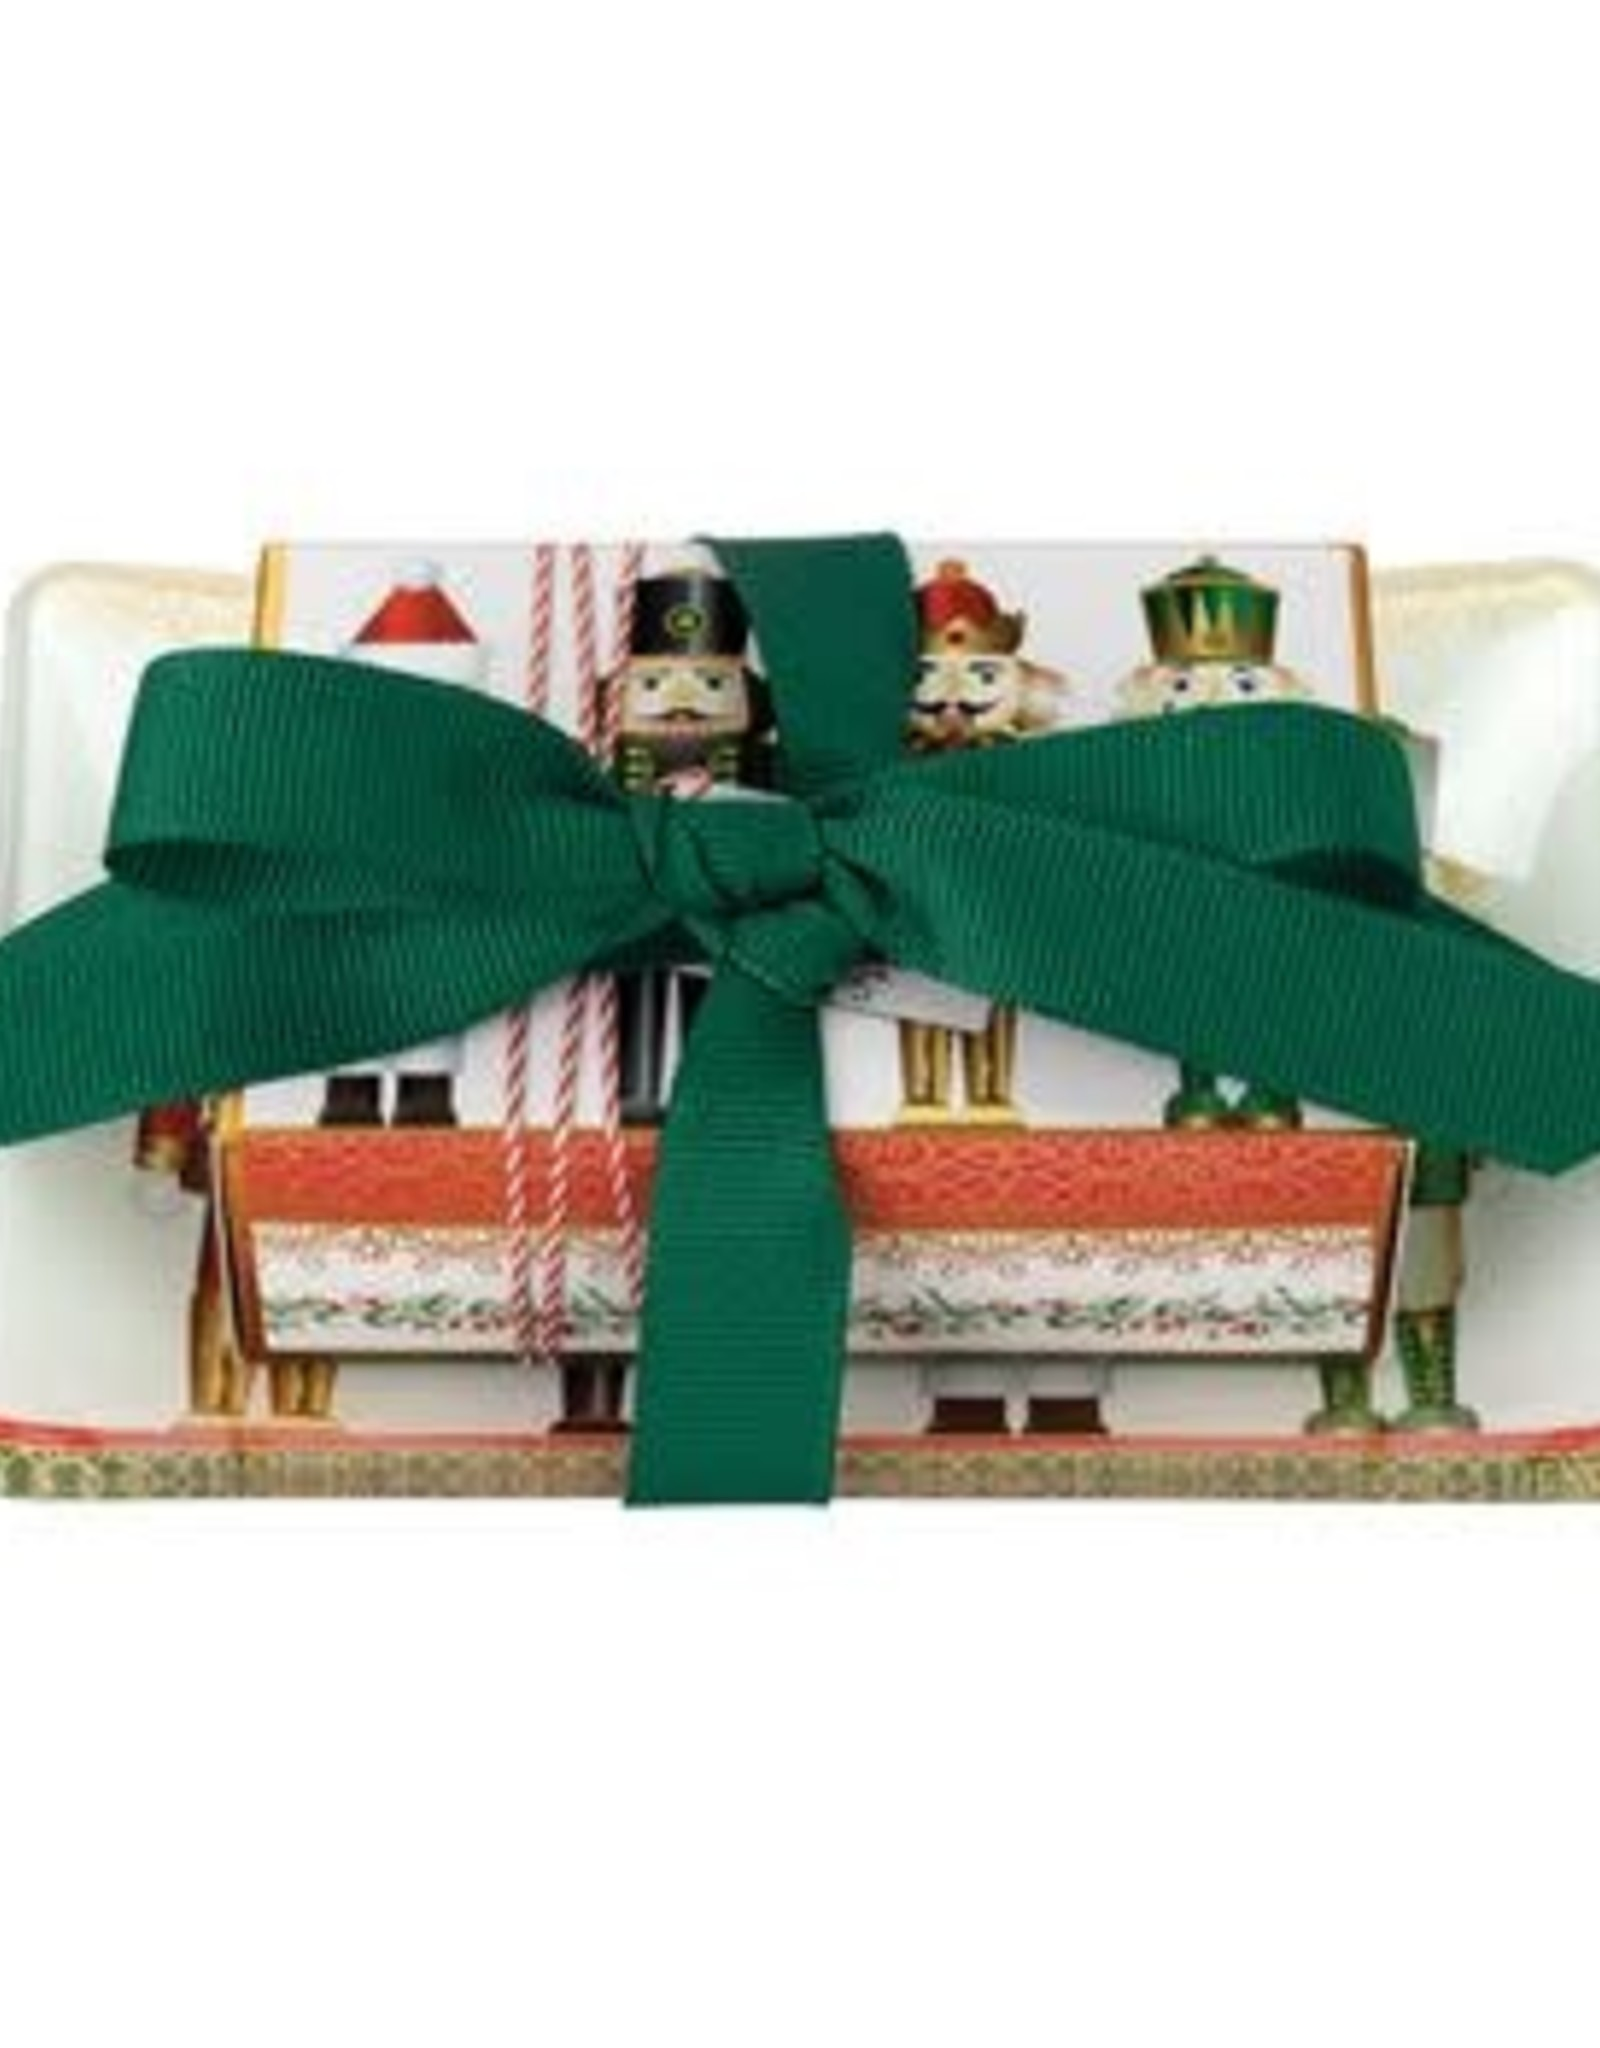 Michel Design Works Nutcracker Gift Soap Set